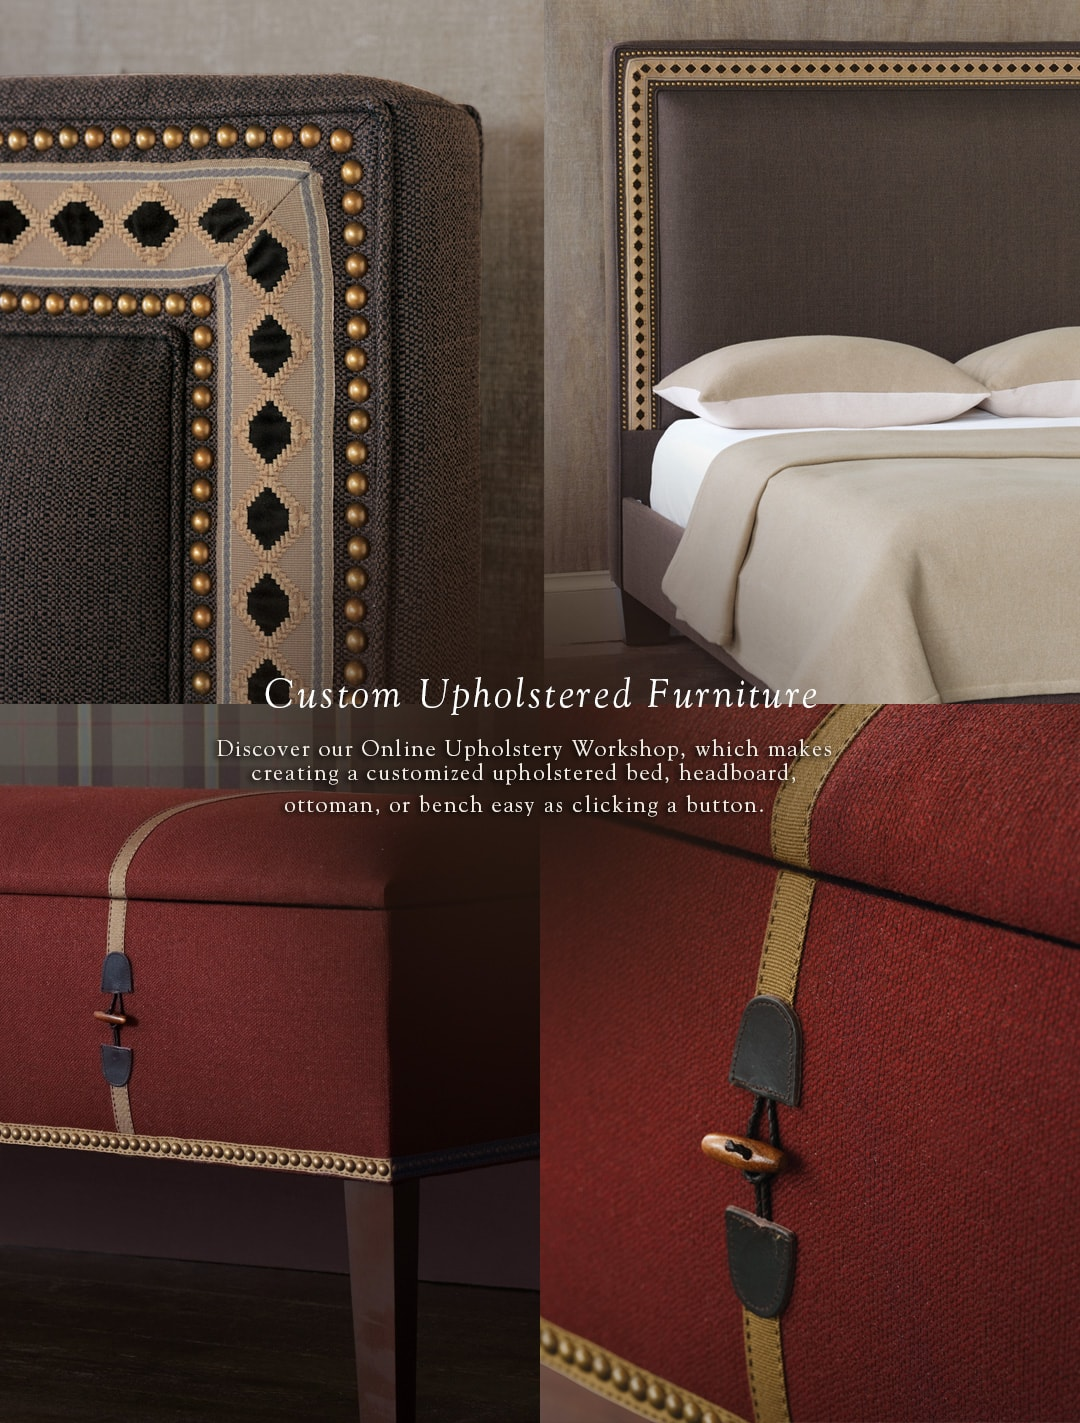 Custom Upholstered Furniture - Discover our Online Upholstery Workshop, which makes creating a customized upholstered bed, headboard, ottoman or bench easy as clicking a button.